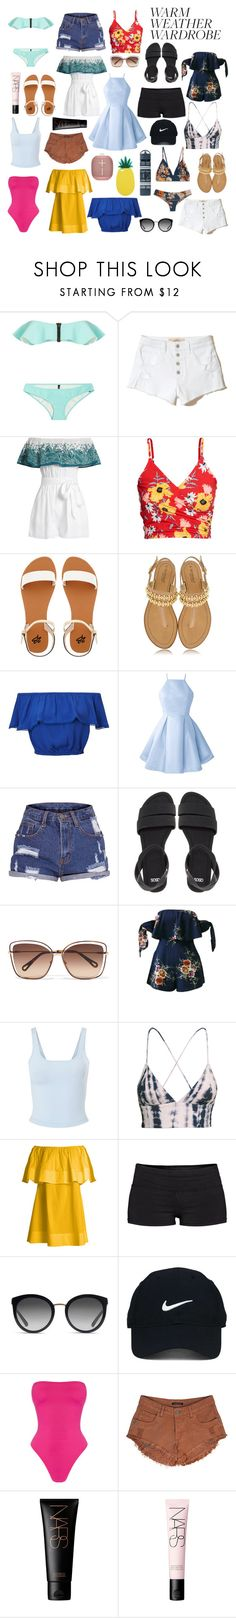 """""""Summer Sunshine"""" by amalilly619 ❤ liked on Polyvore featuring Lisa Marie Fernandez, Hollister Co., Mara Hoffman, H&M, 2b bebe, L'Estrosa, Miss Selfridge, ASOS, Chloé and WithChic"""